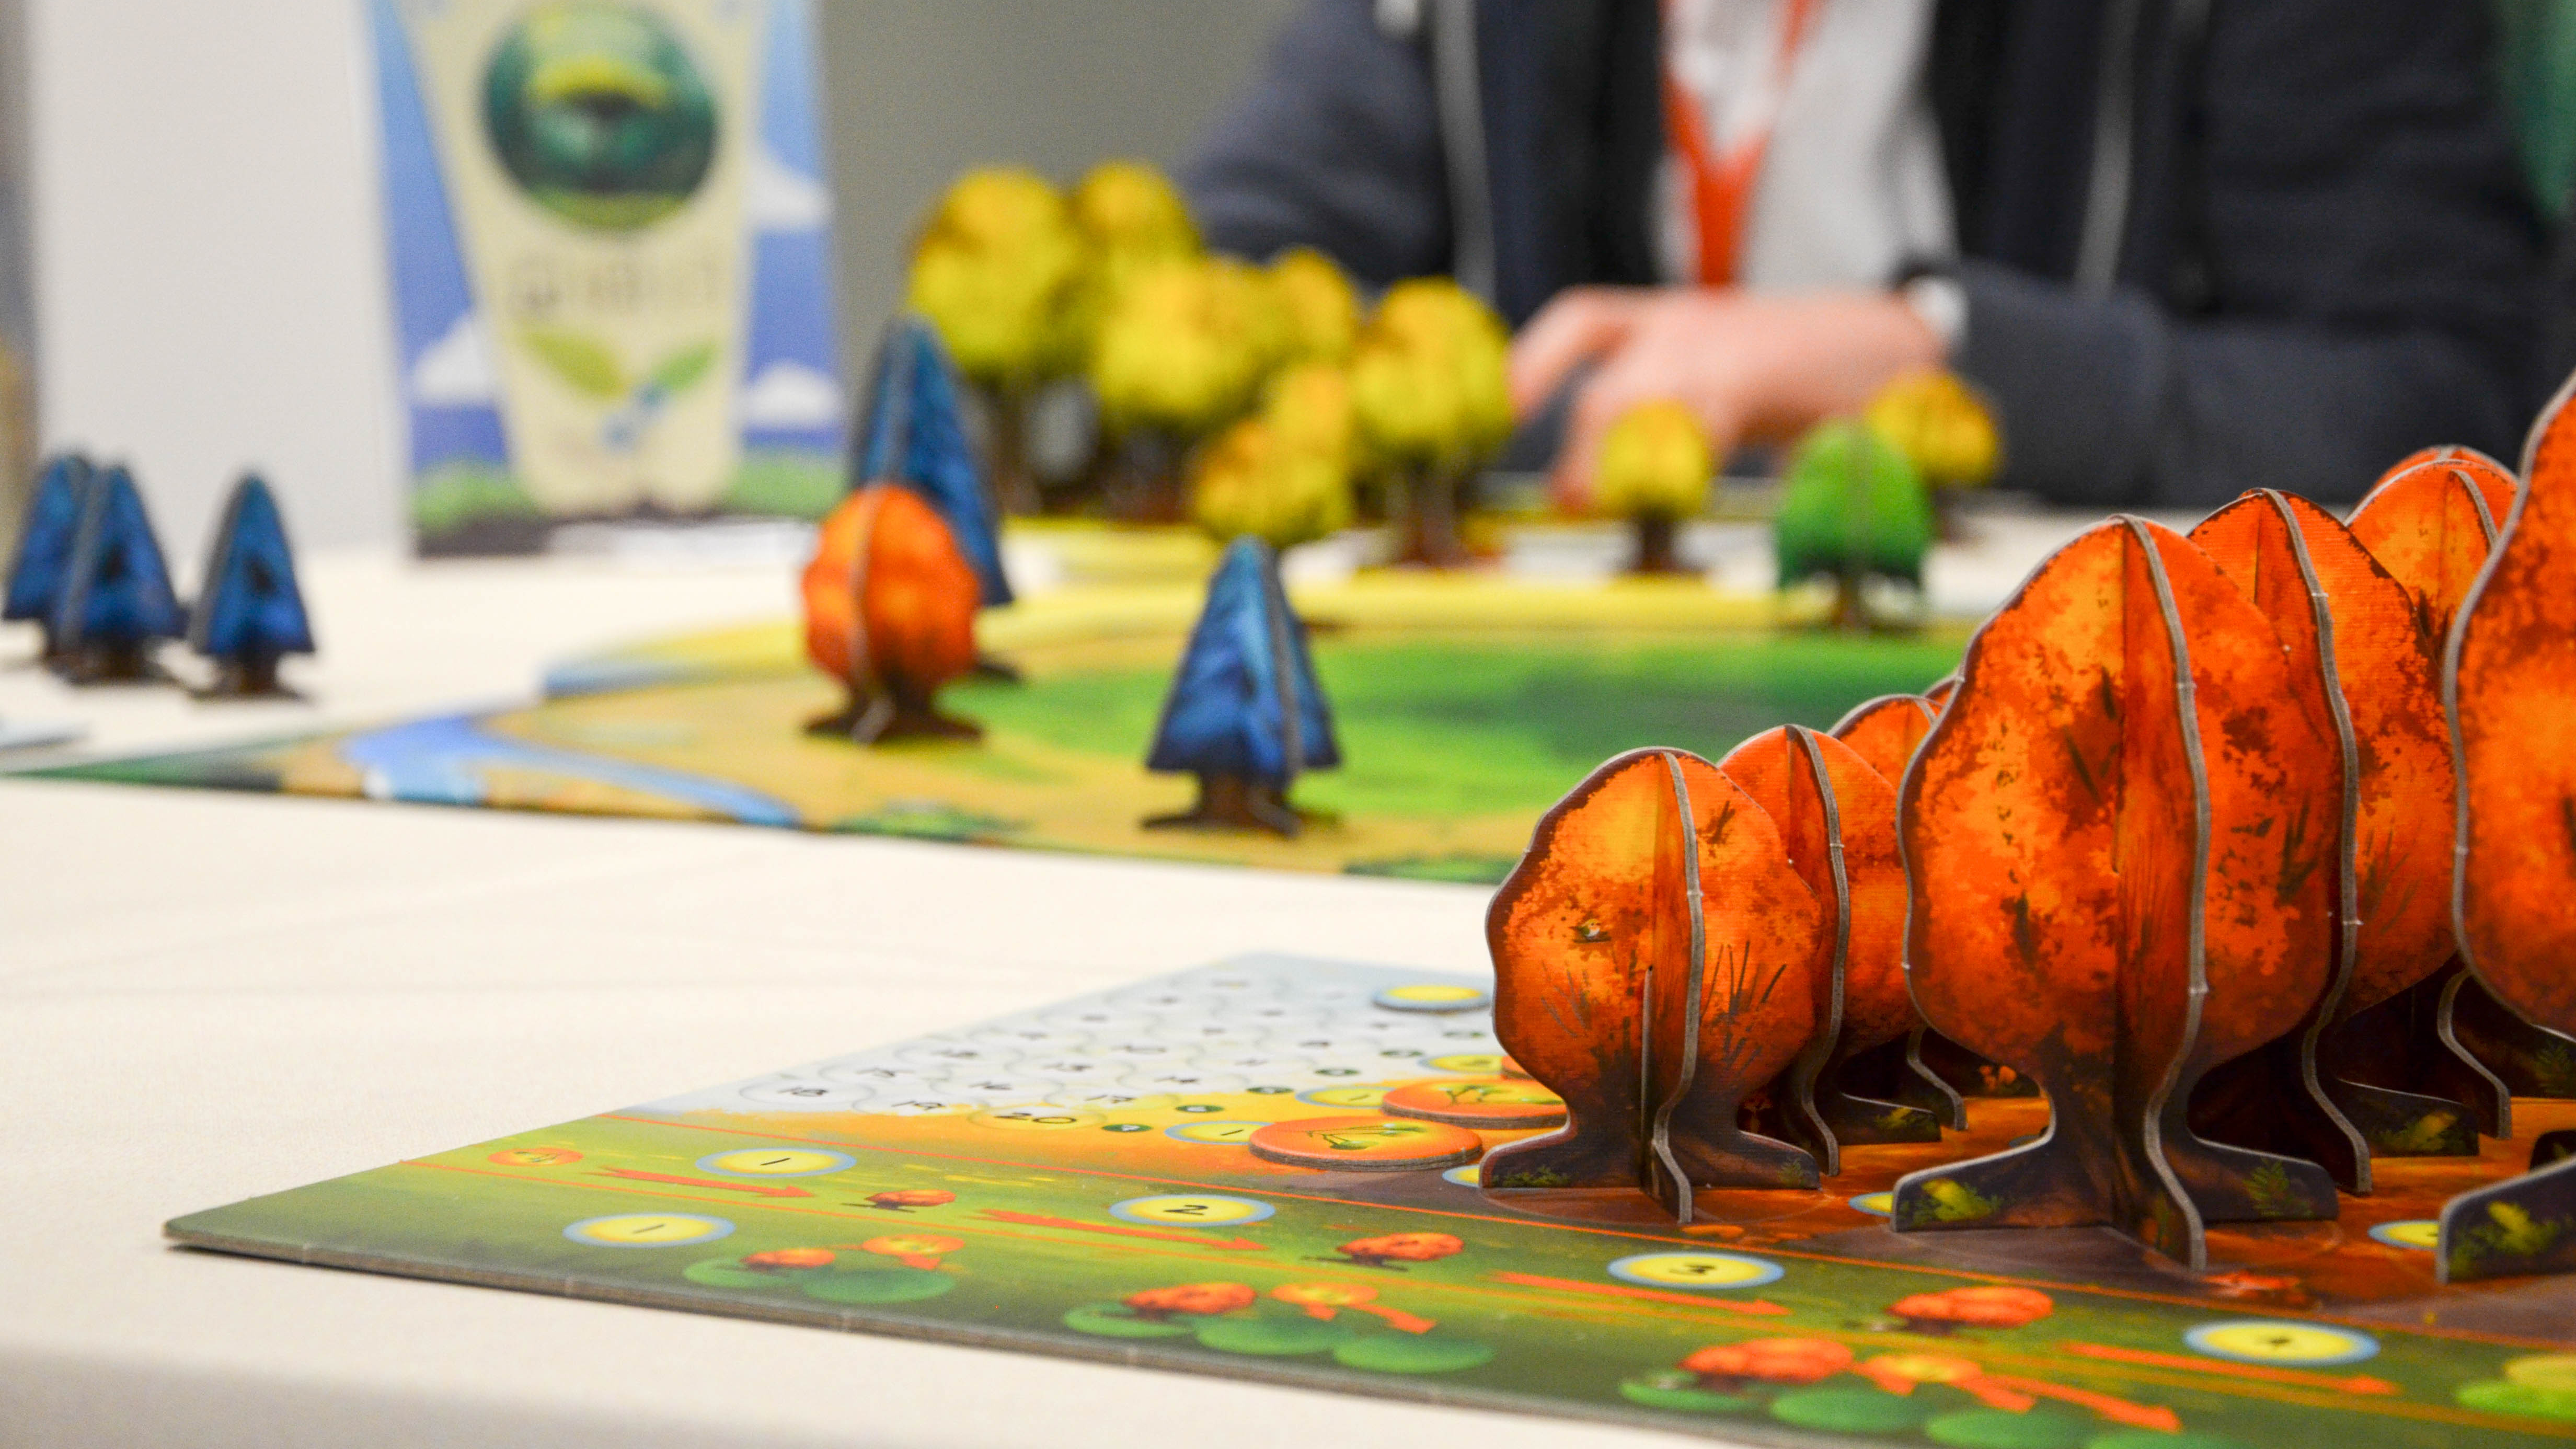 The 13 best board games 2019: for adults, families and two players | T3